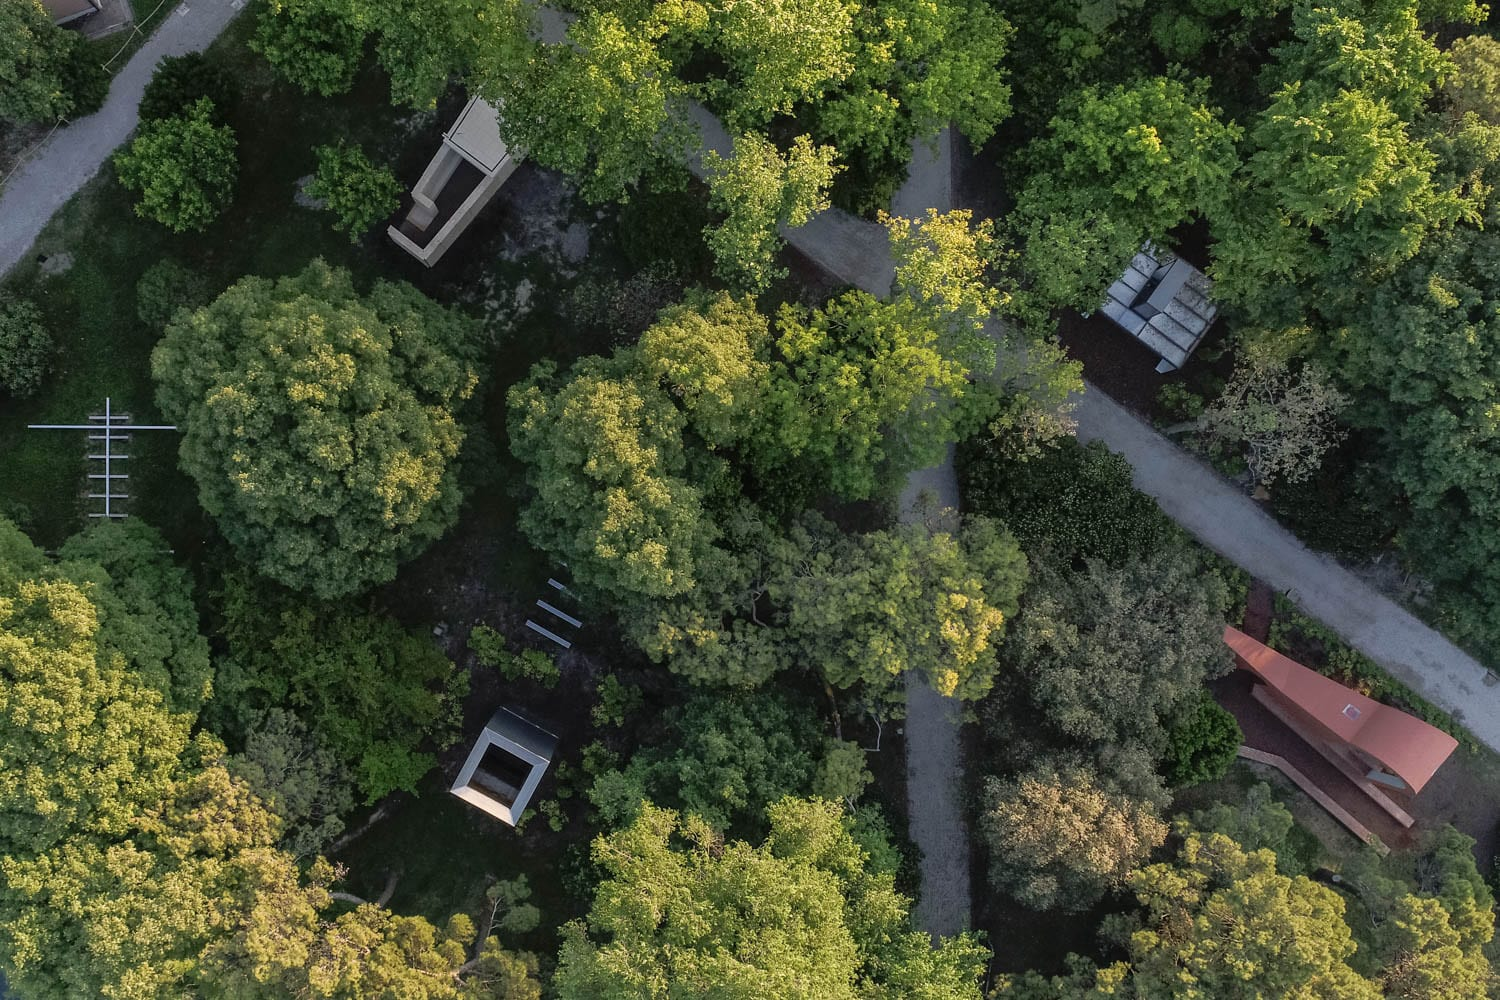 10 Chapels in a Venice Forest, Venice Architecture Biennale 2018 | Yellowtrace